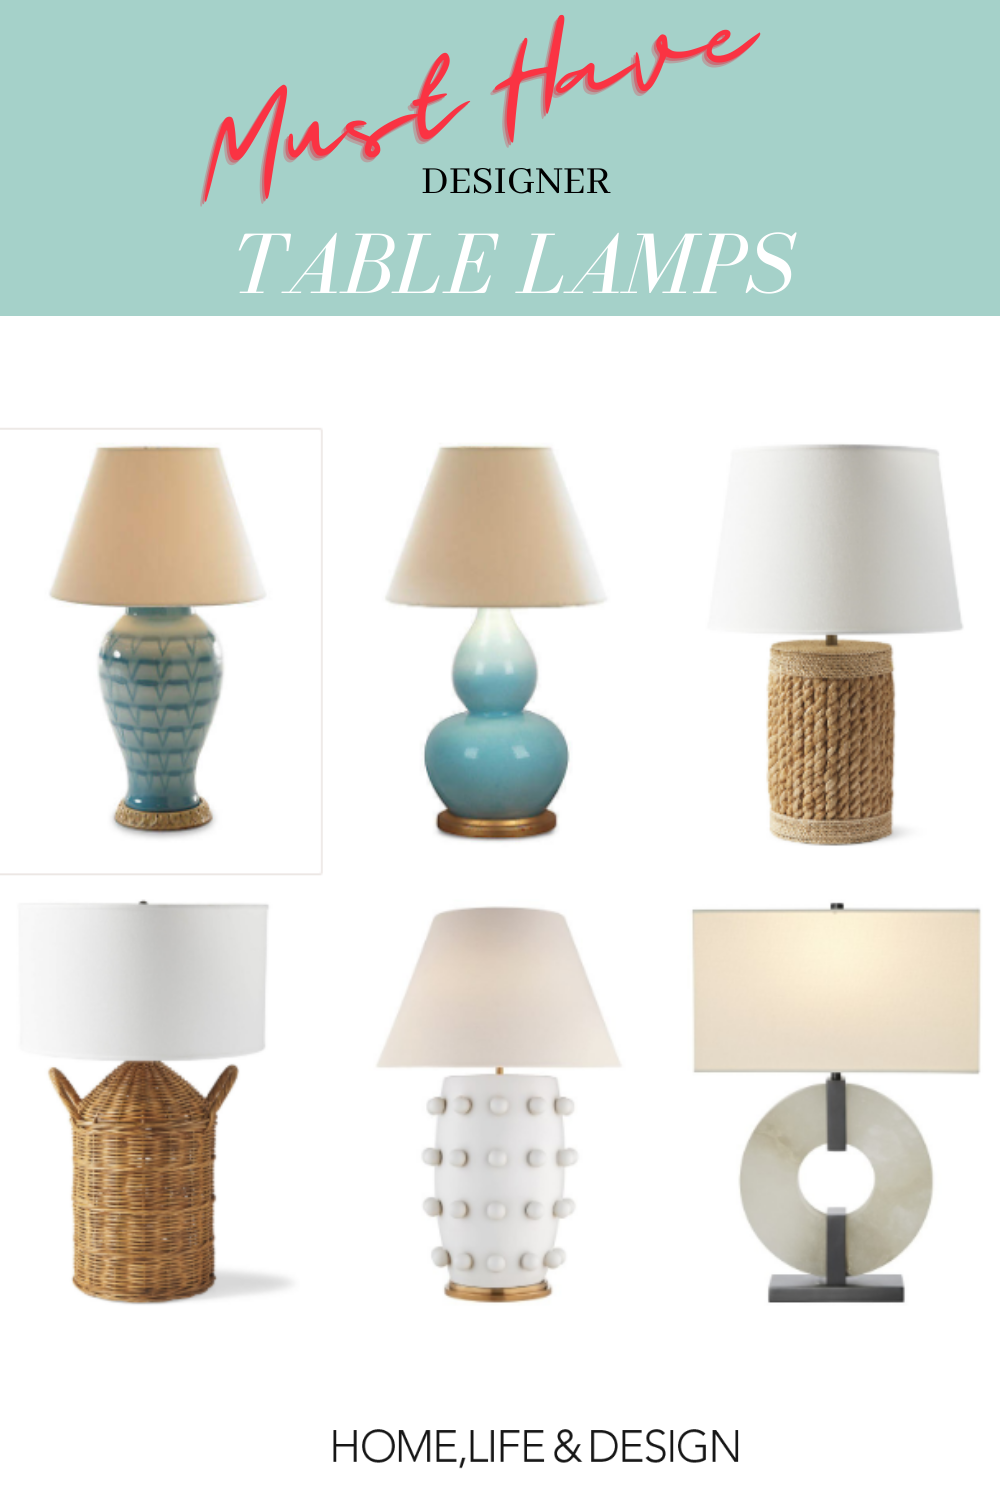 Six Must Have designer Table Lamps from Vero Beach Interior Designer Jill Shevlin